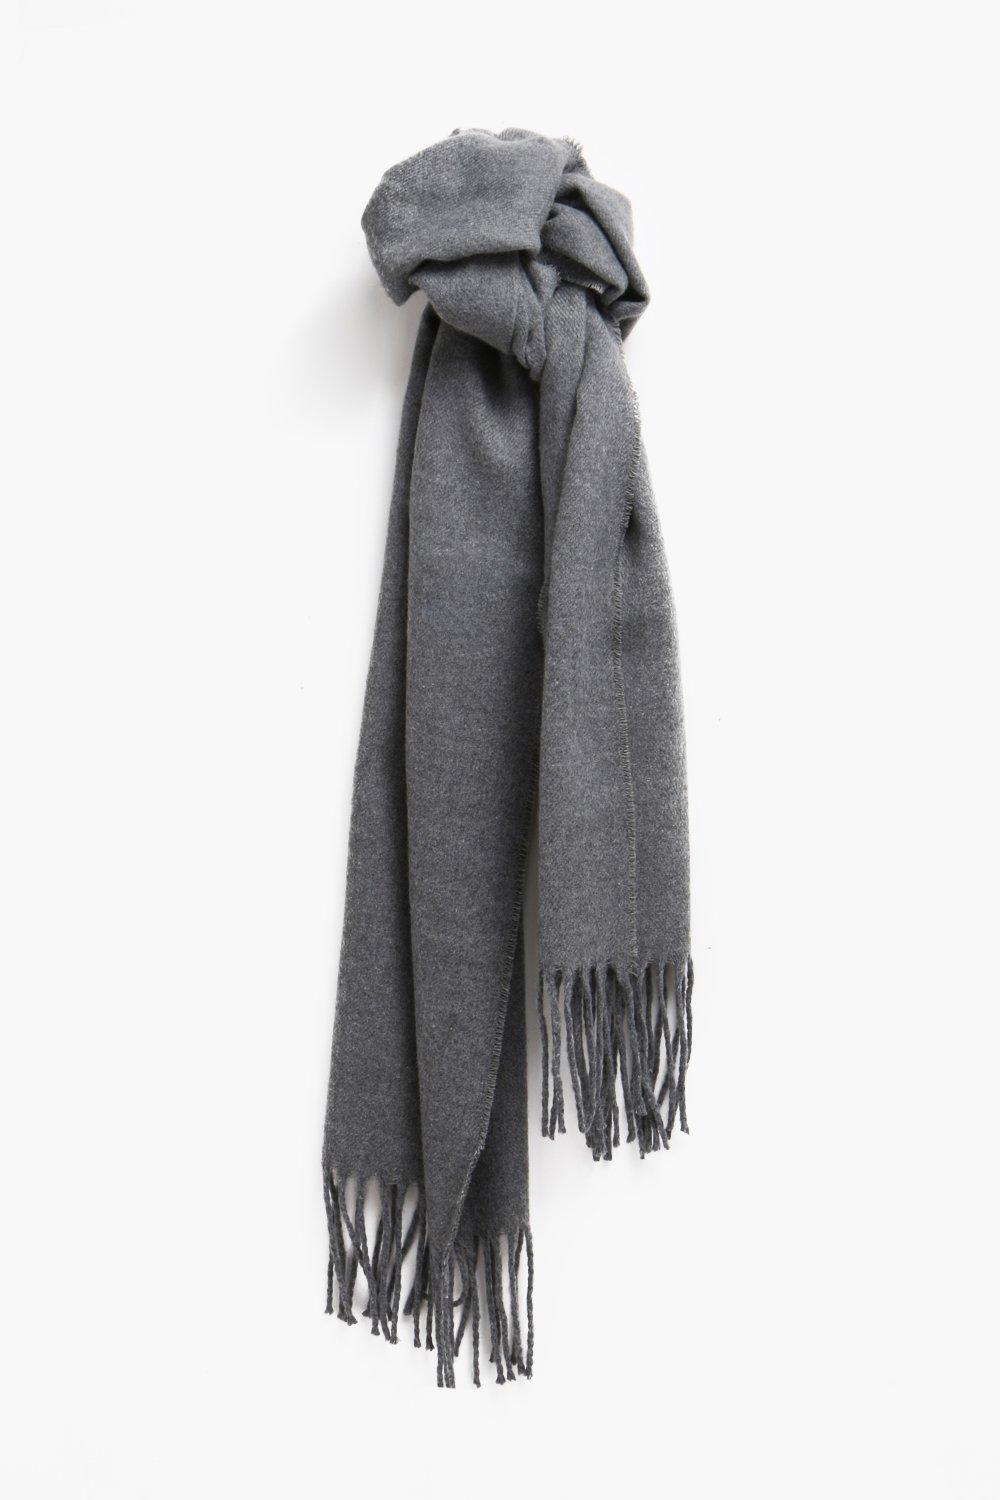 boohooMAN charcoal Plain Knitted Tassel Scarf